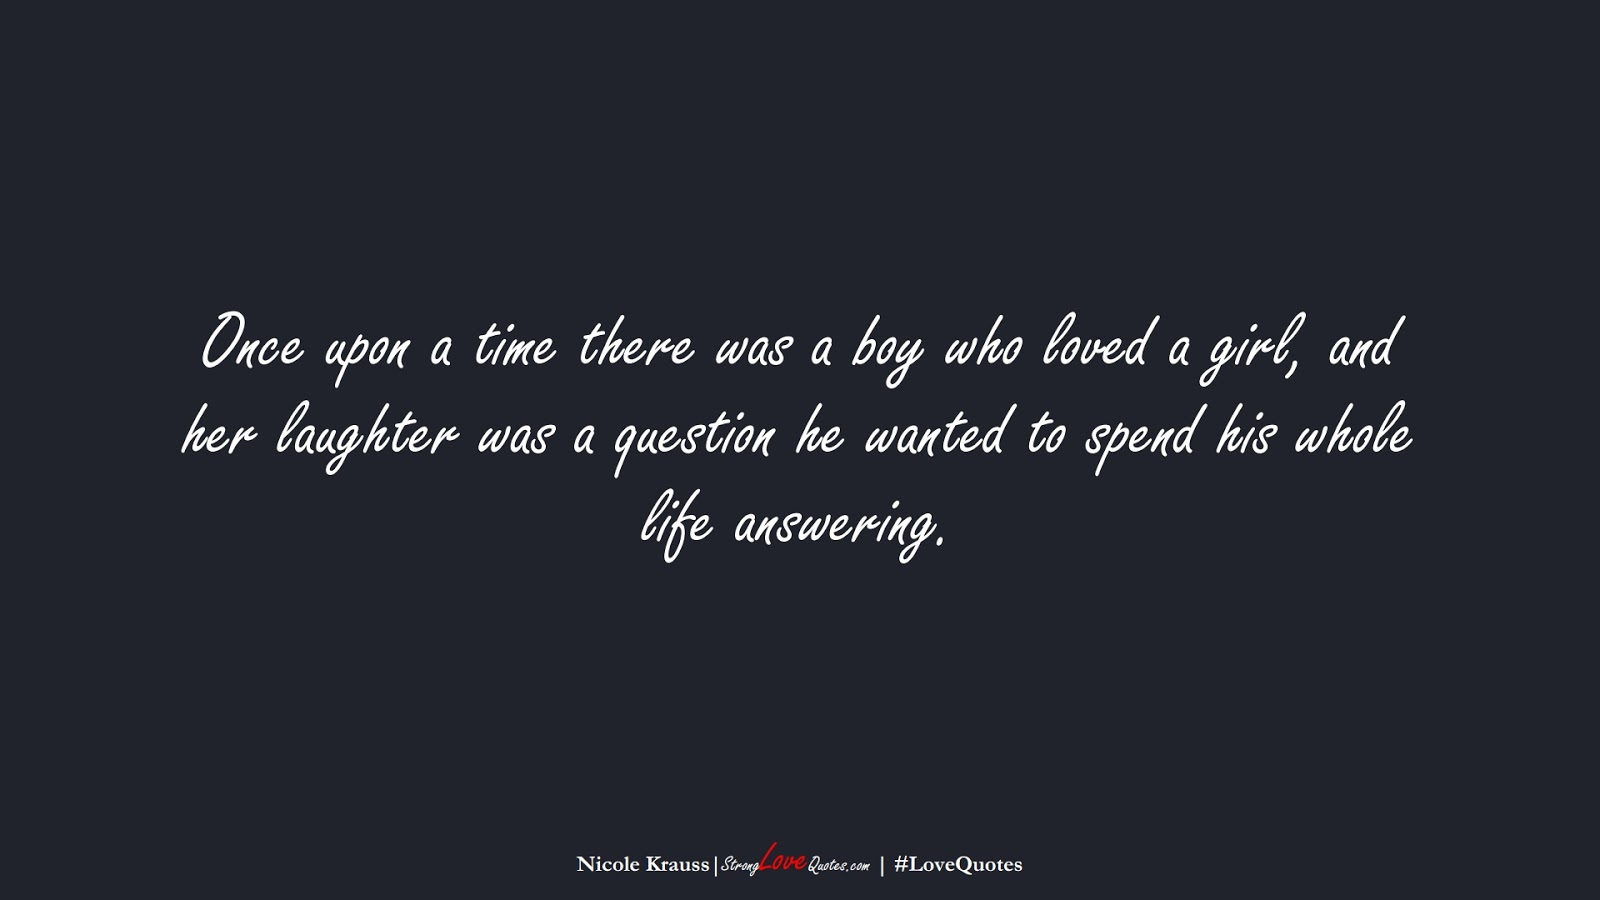 Once upon a time there was a boy who loved a girl, and her laughter was a question he wanted to spend his whole life answering. (Nicole Krauss);  #LoveQuotes